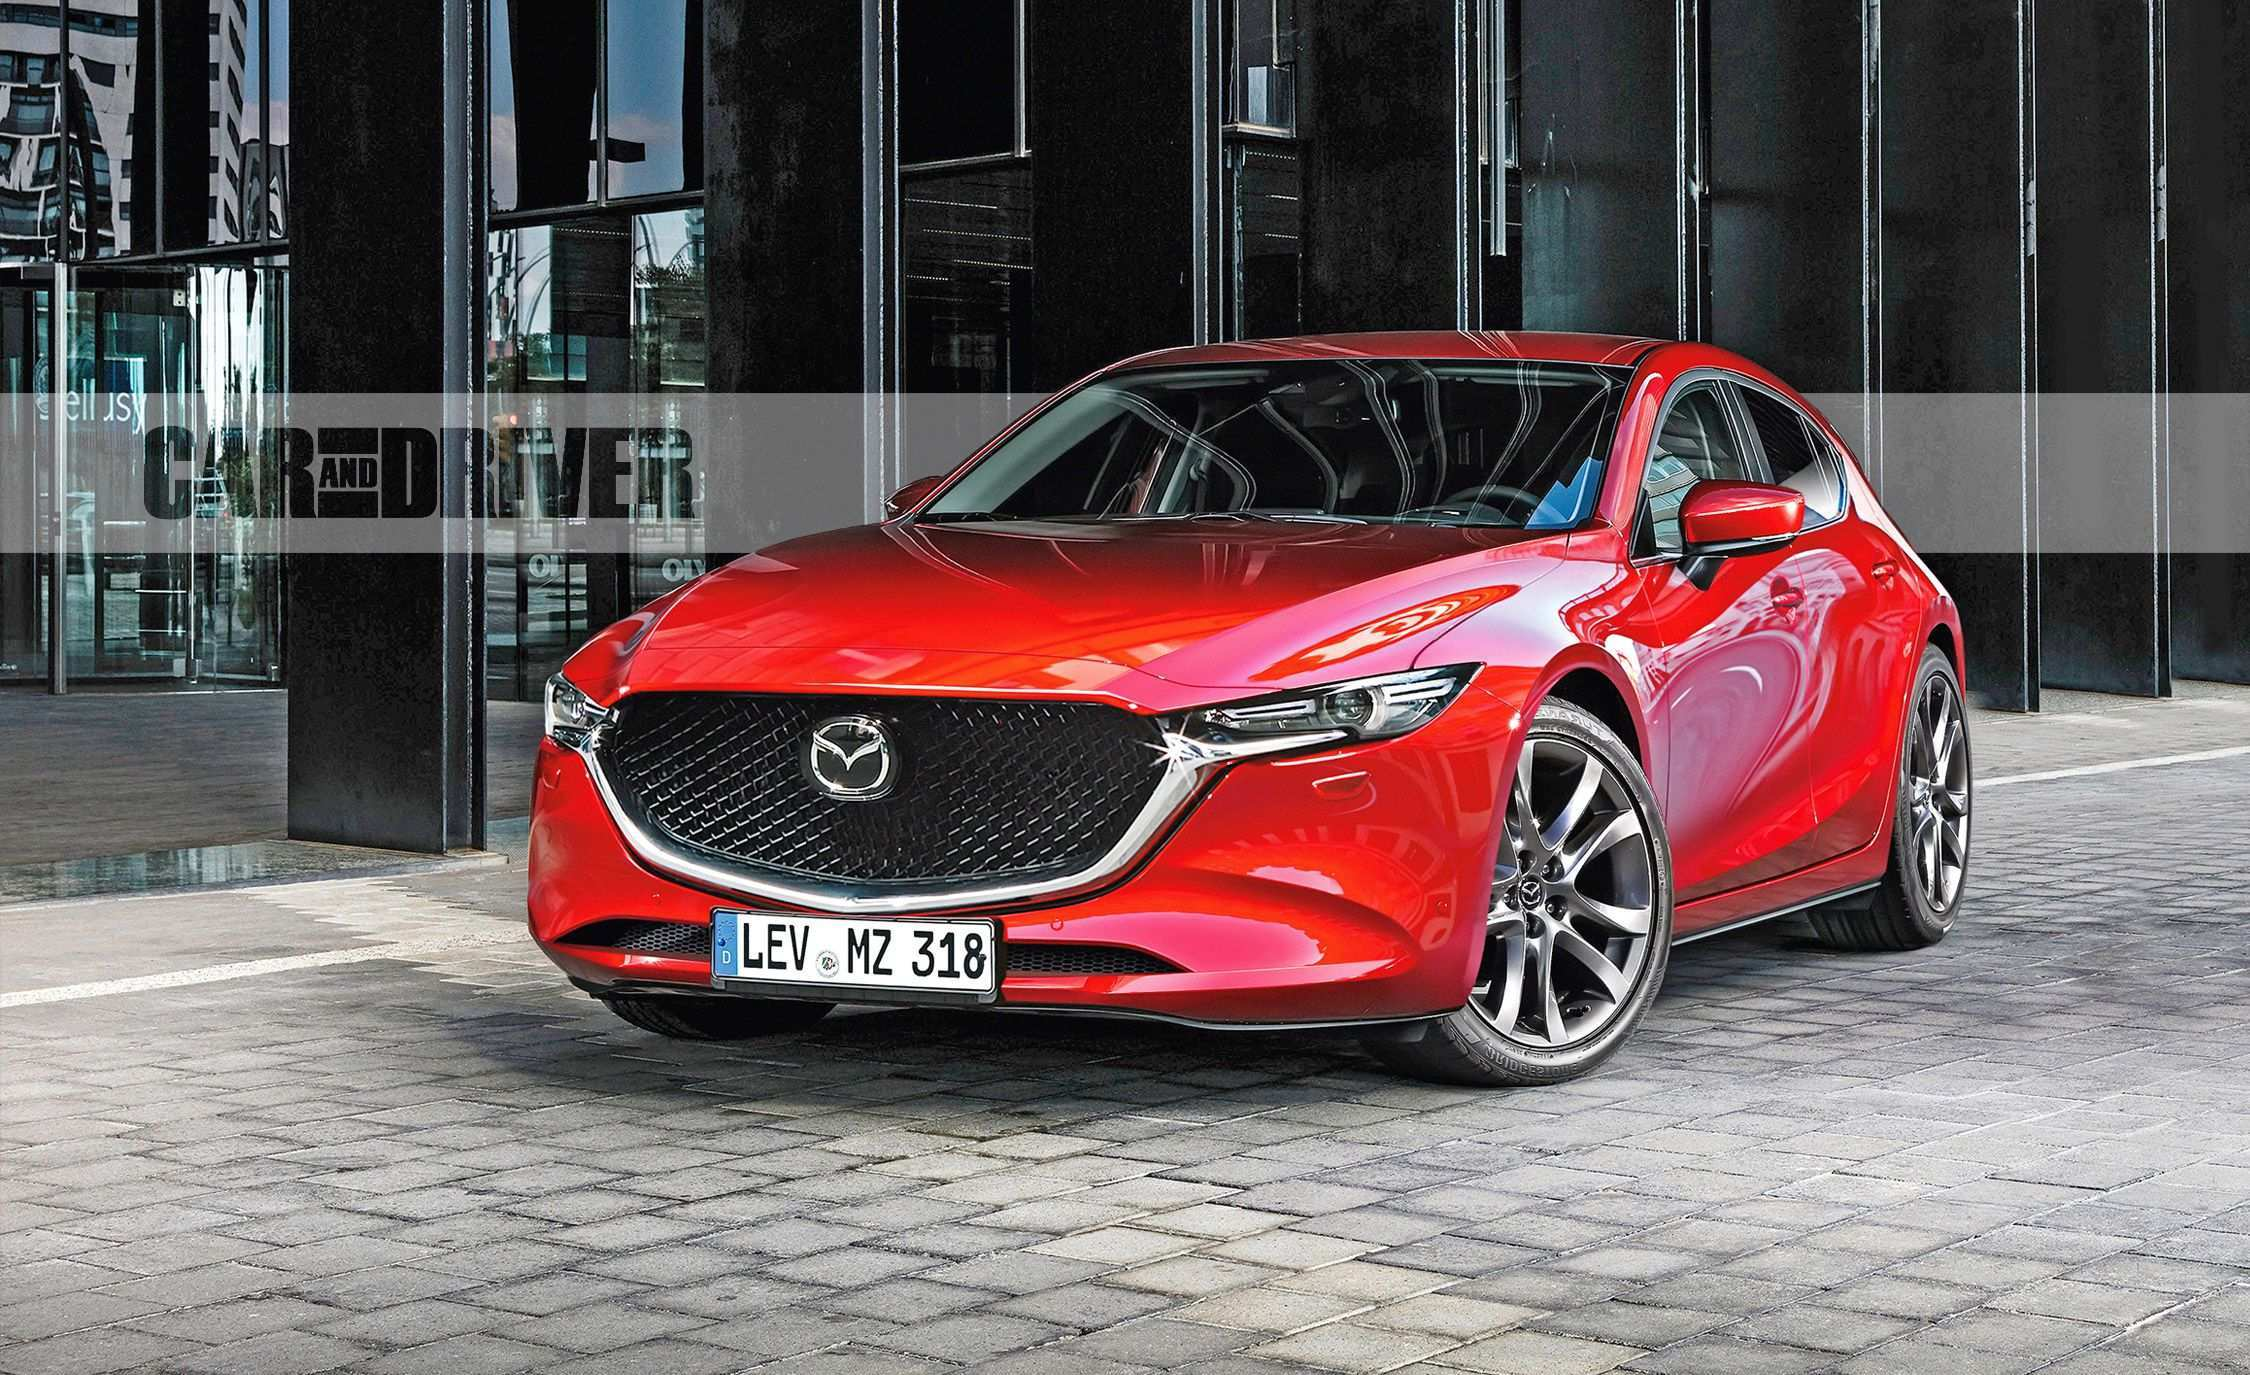 62 All New Mazda I Touring 2020 Specs and Review for Mazda I Touring 2020